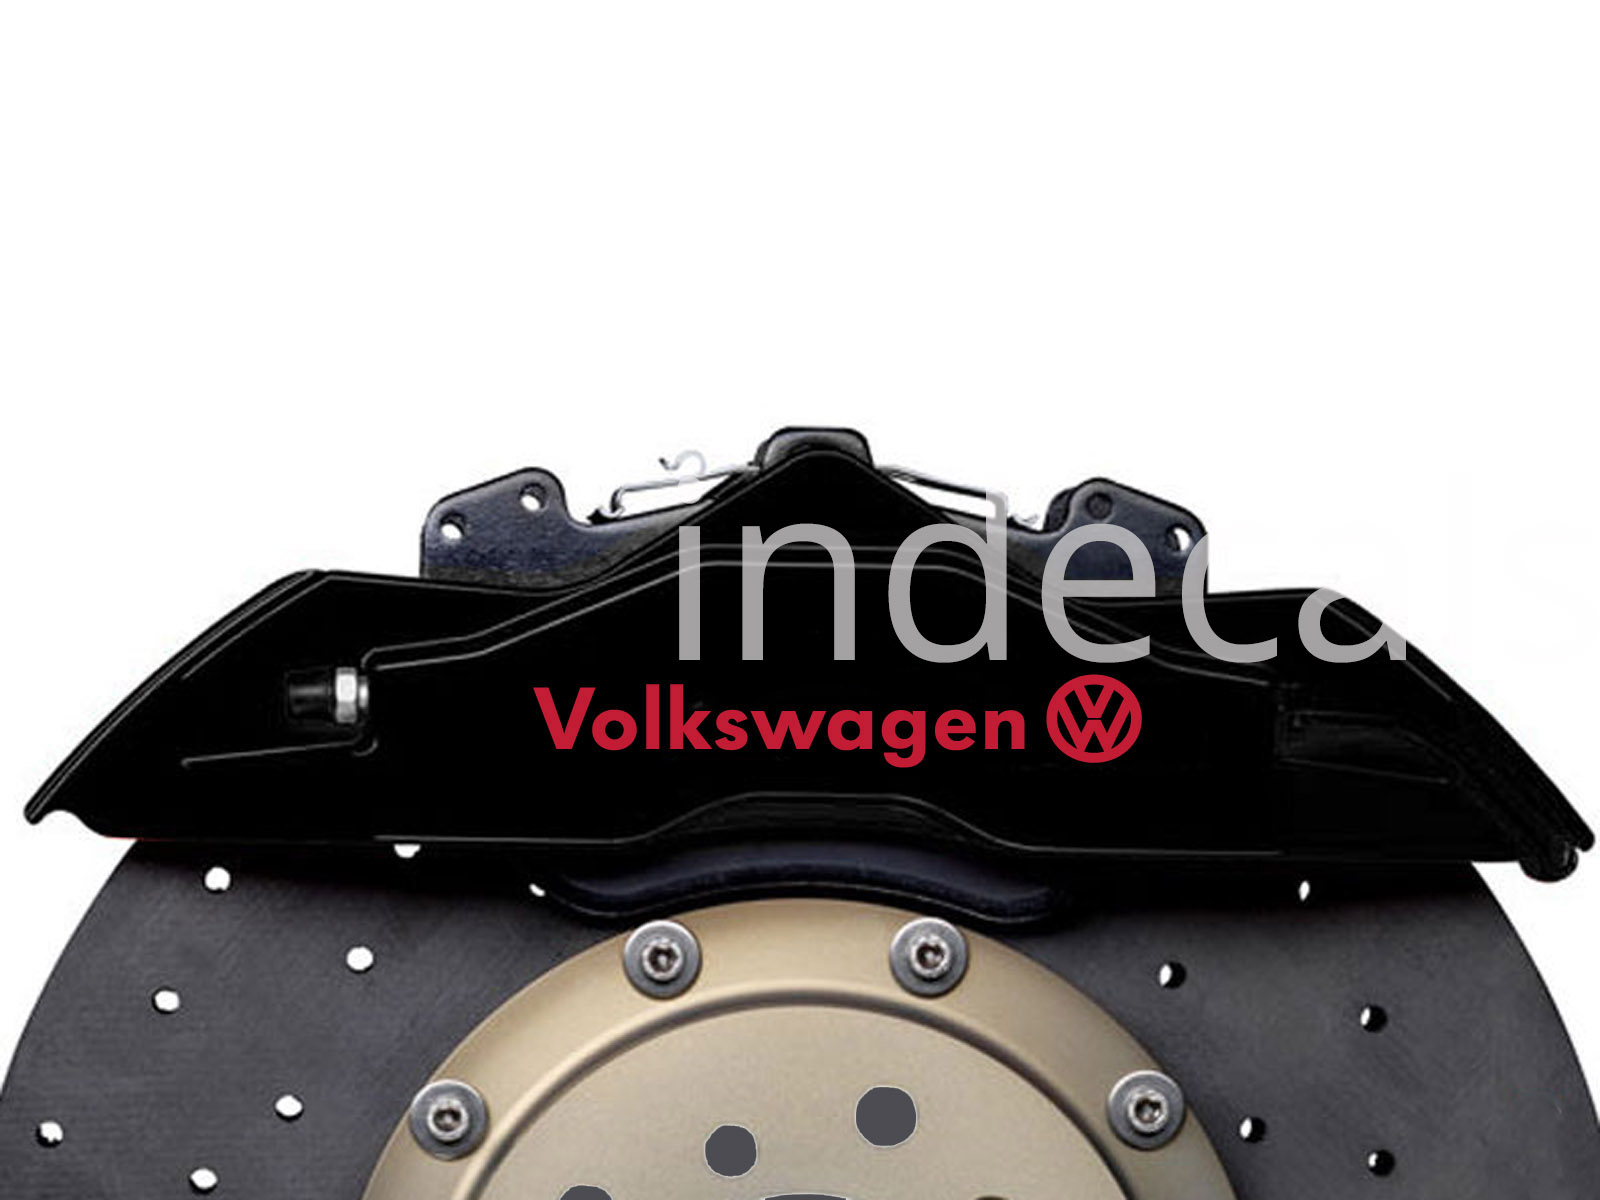 6 x Volkswagen Stickers for Brakes - Red